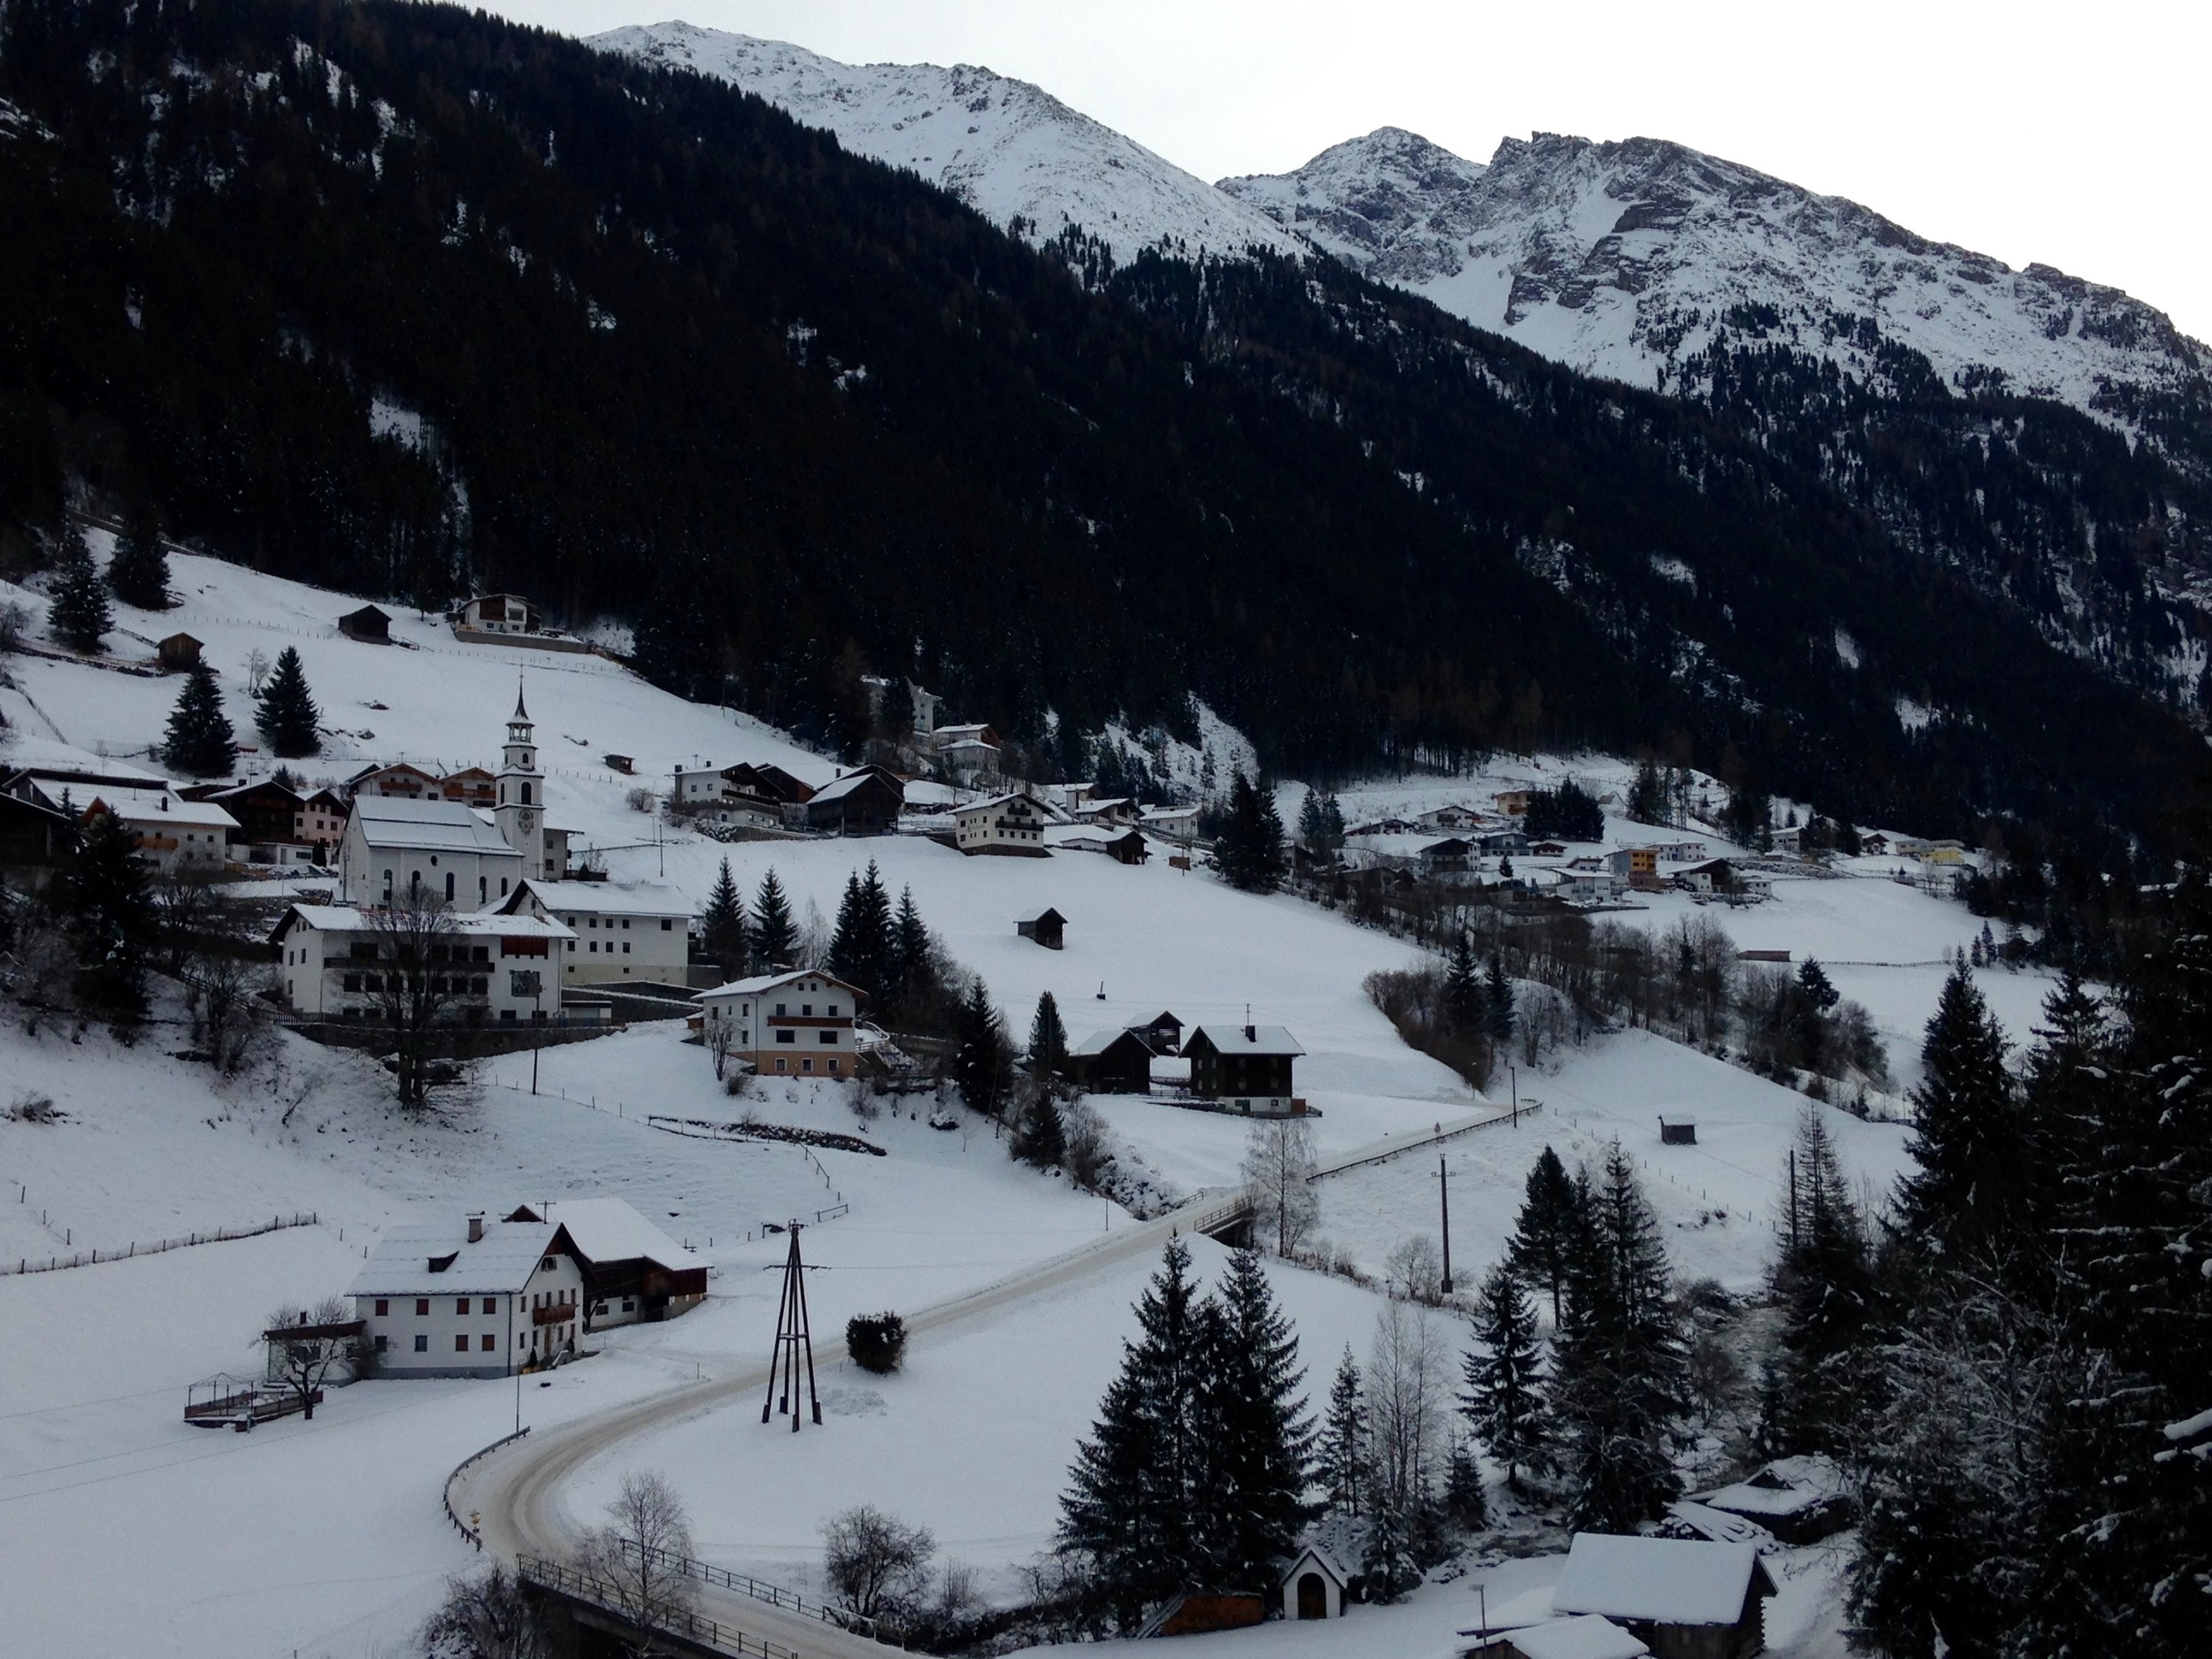 Not your average church retreat spot, right? This was the view from our chalet.